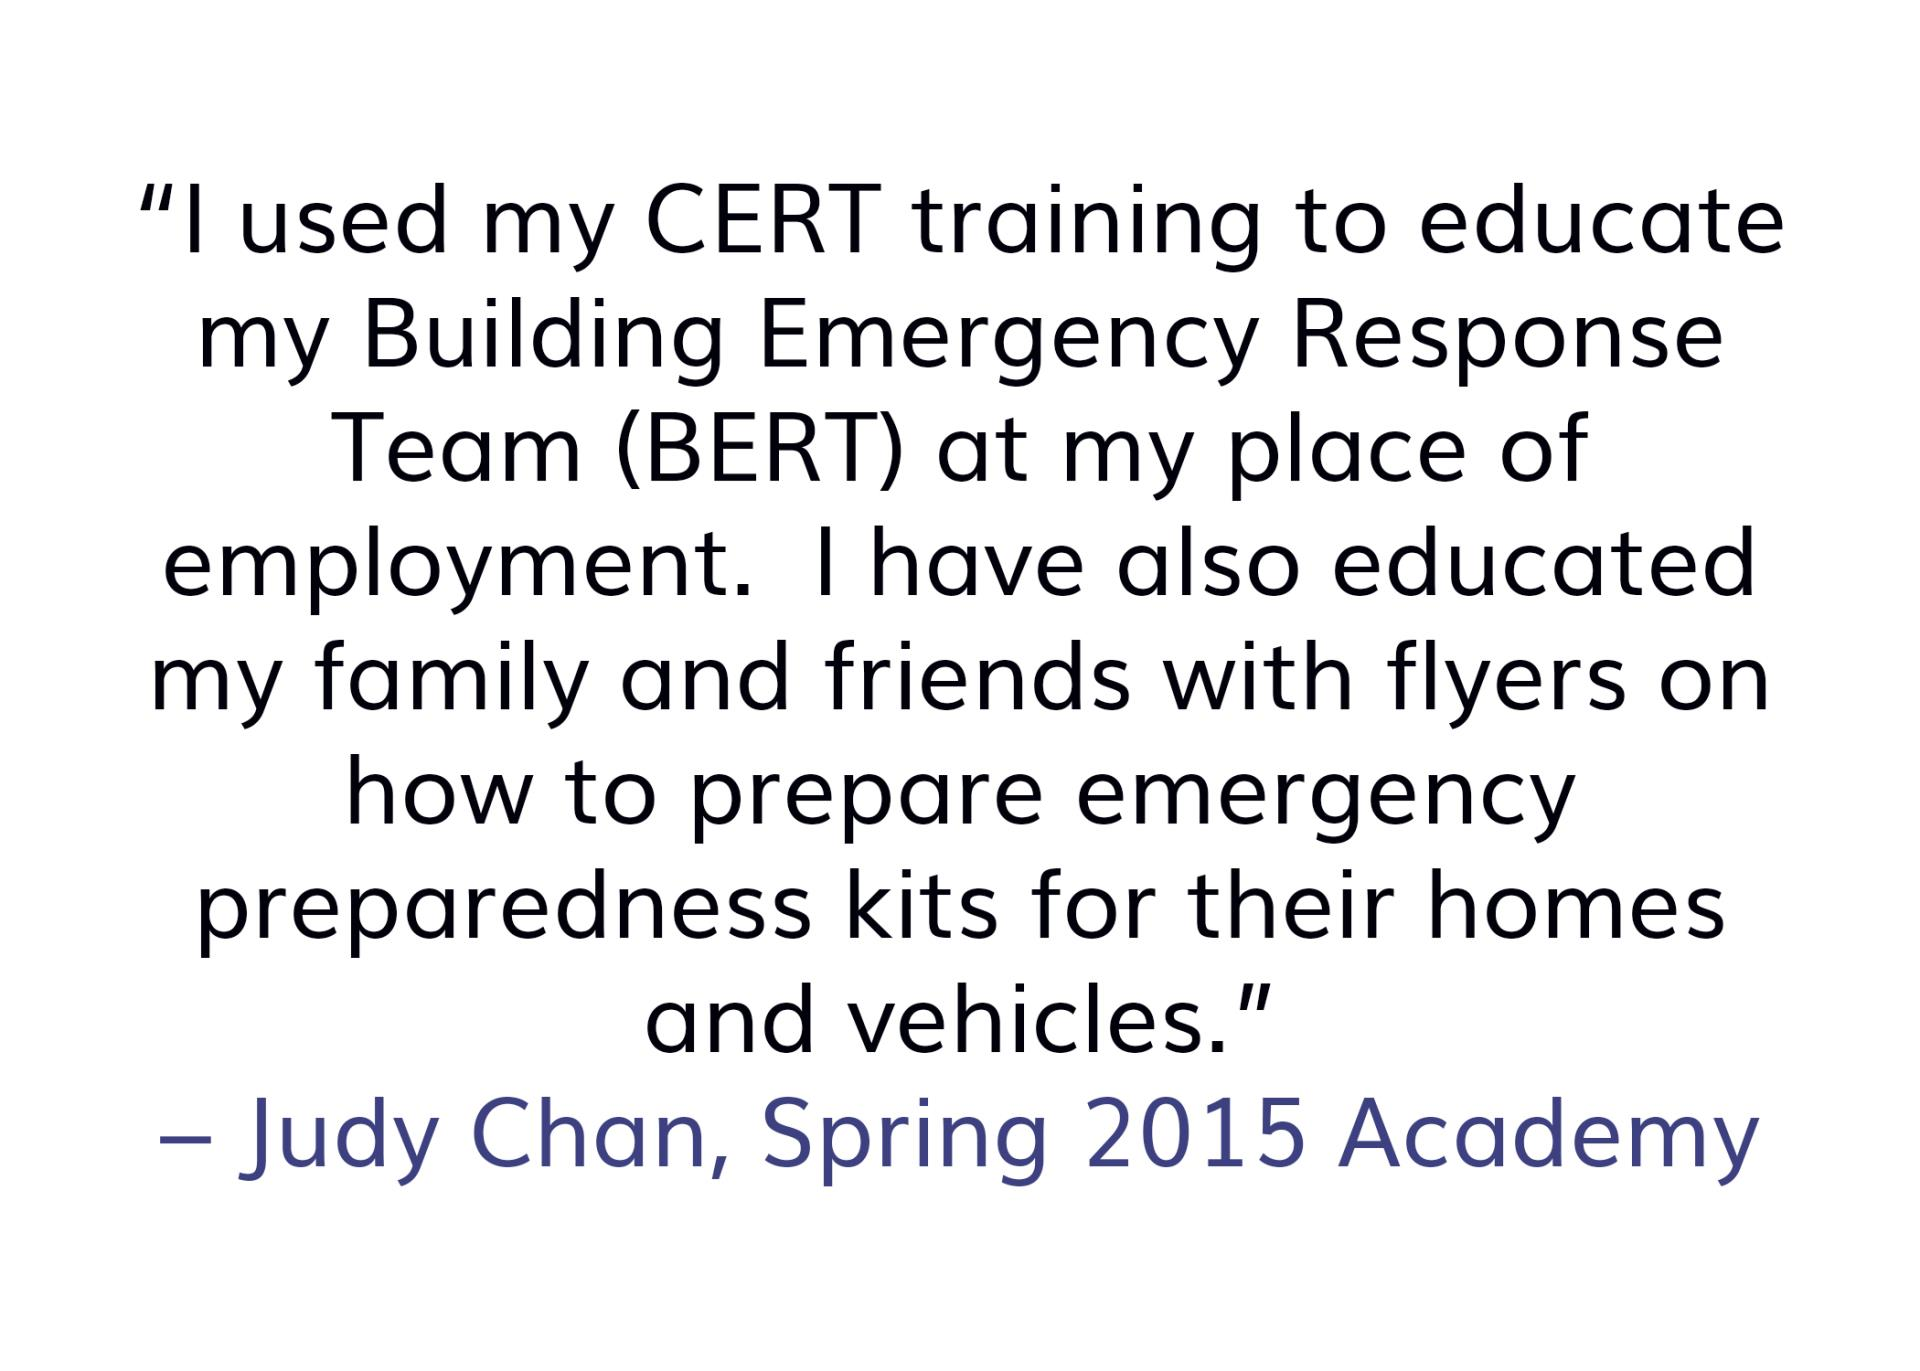 Judy Chan quote about CERT